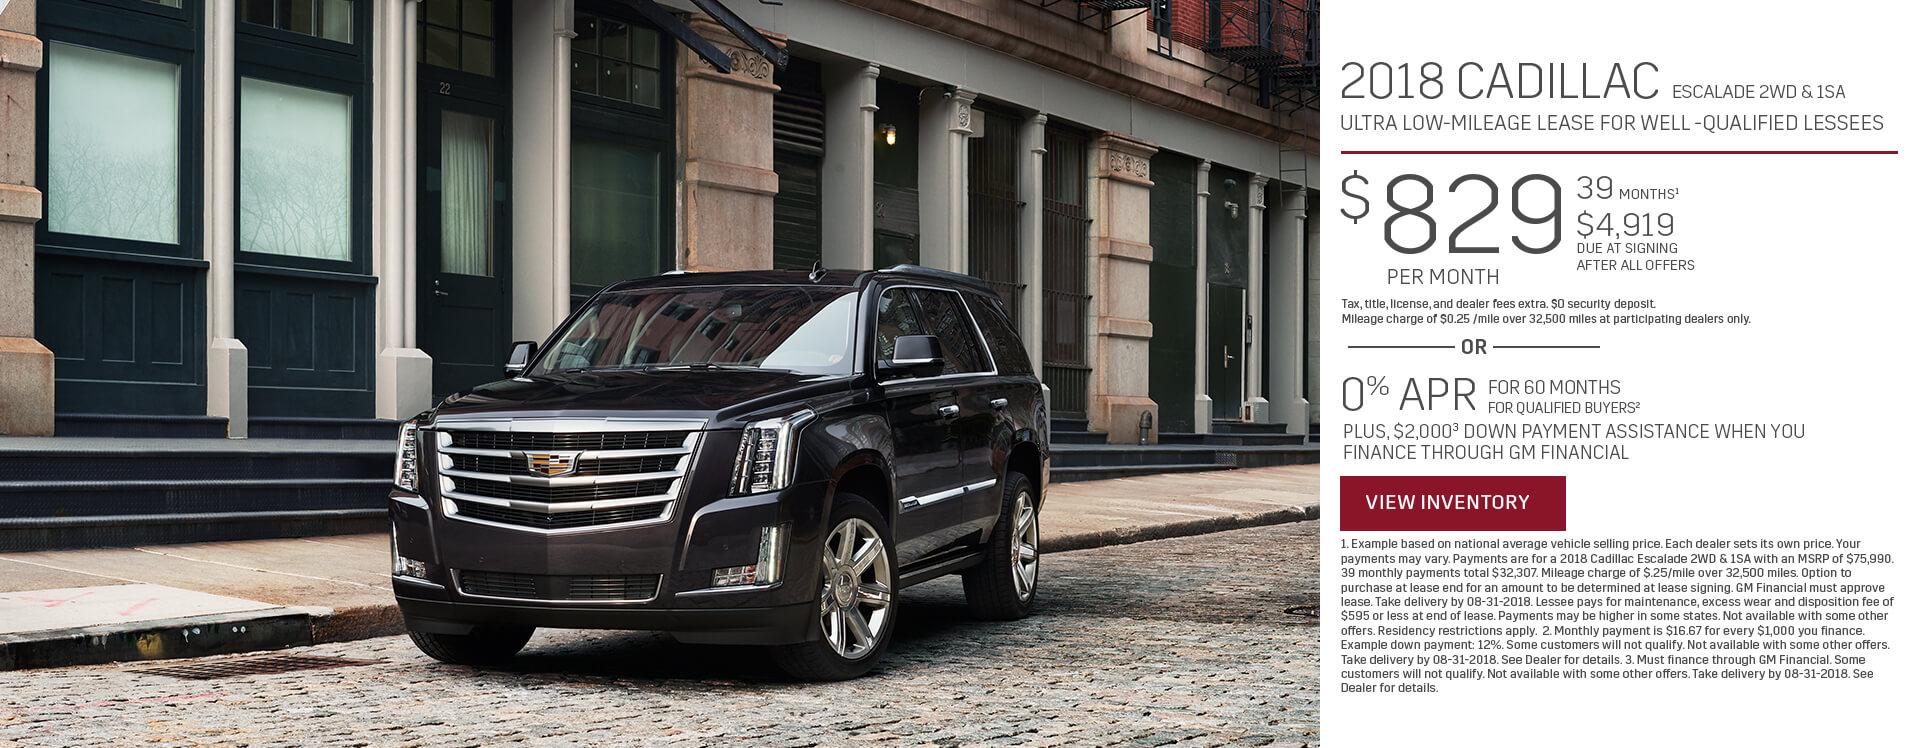 Escalade Lease